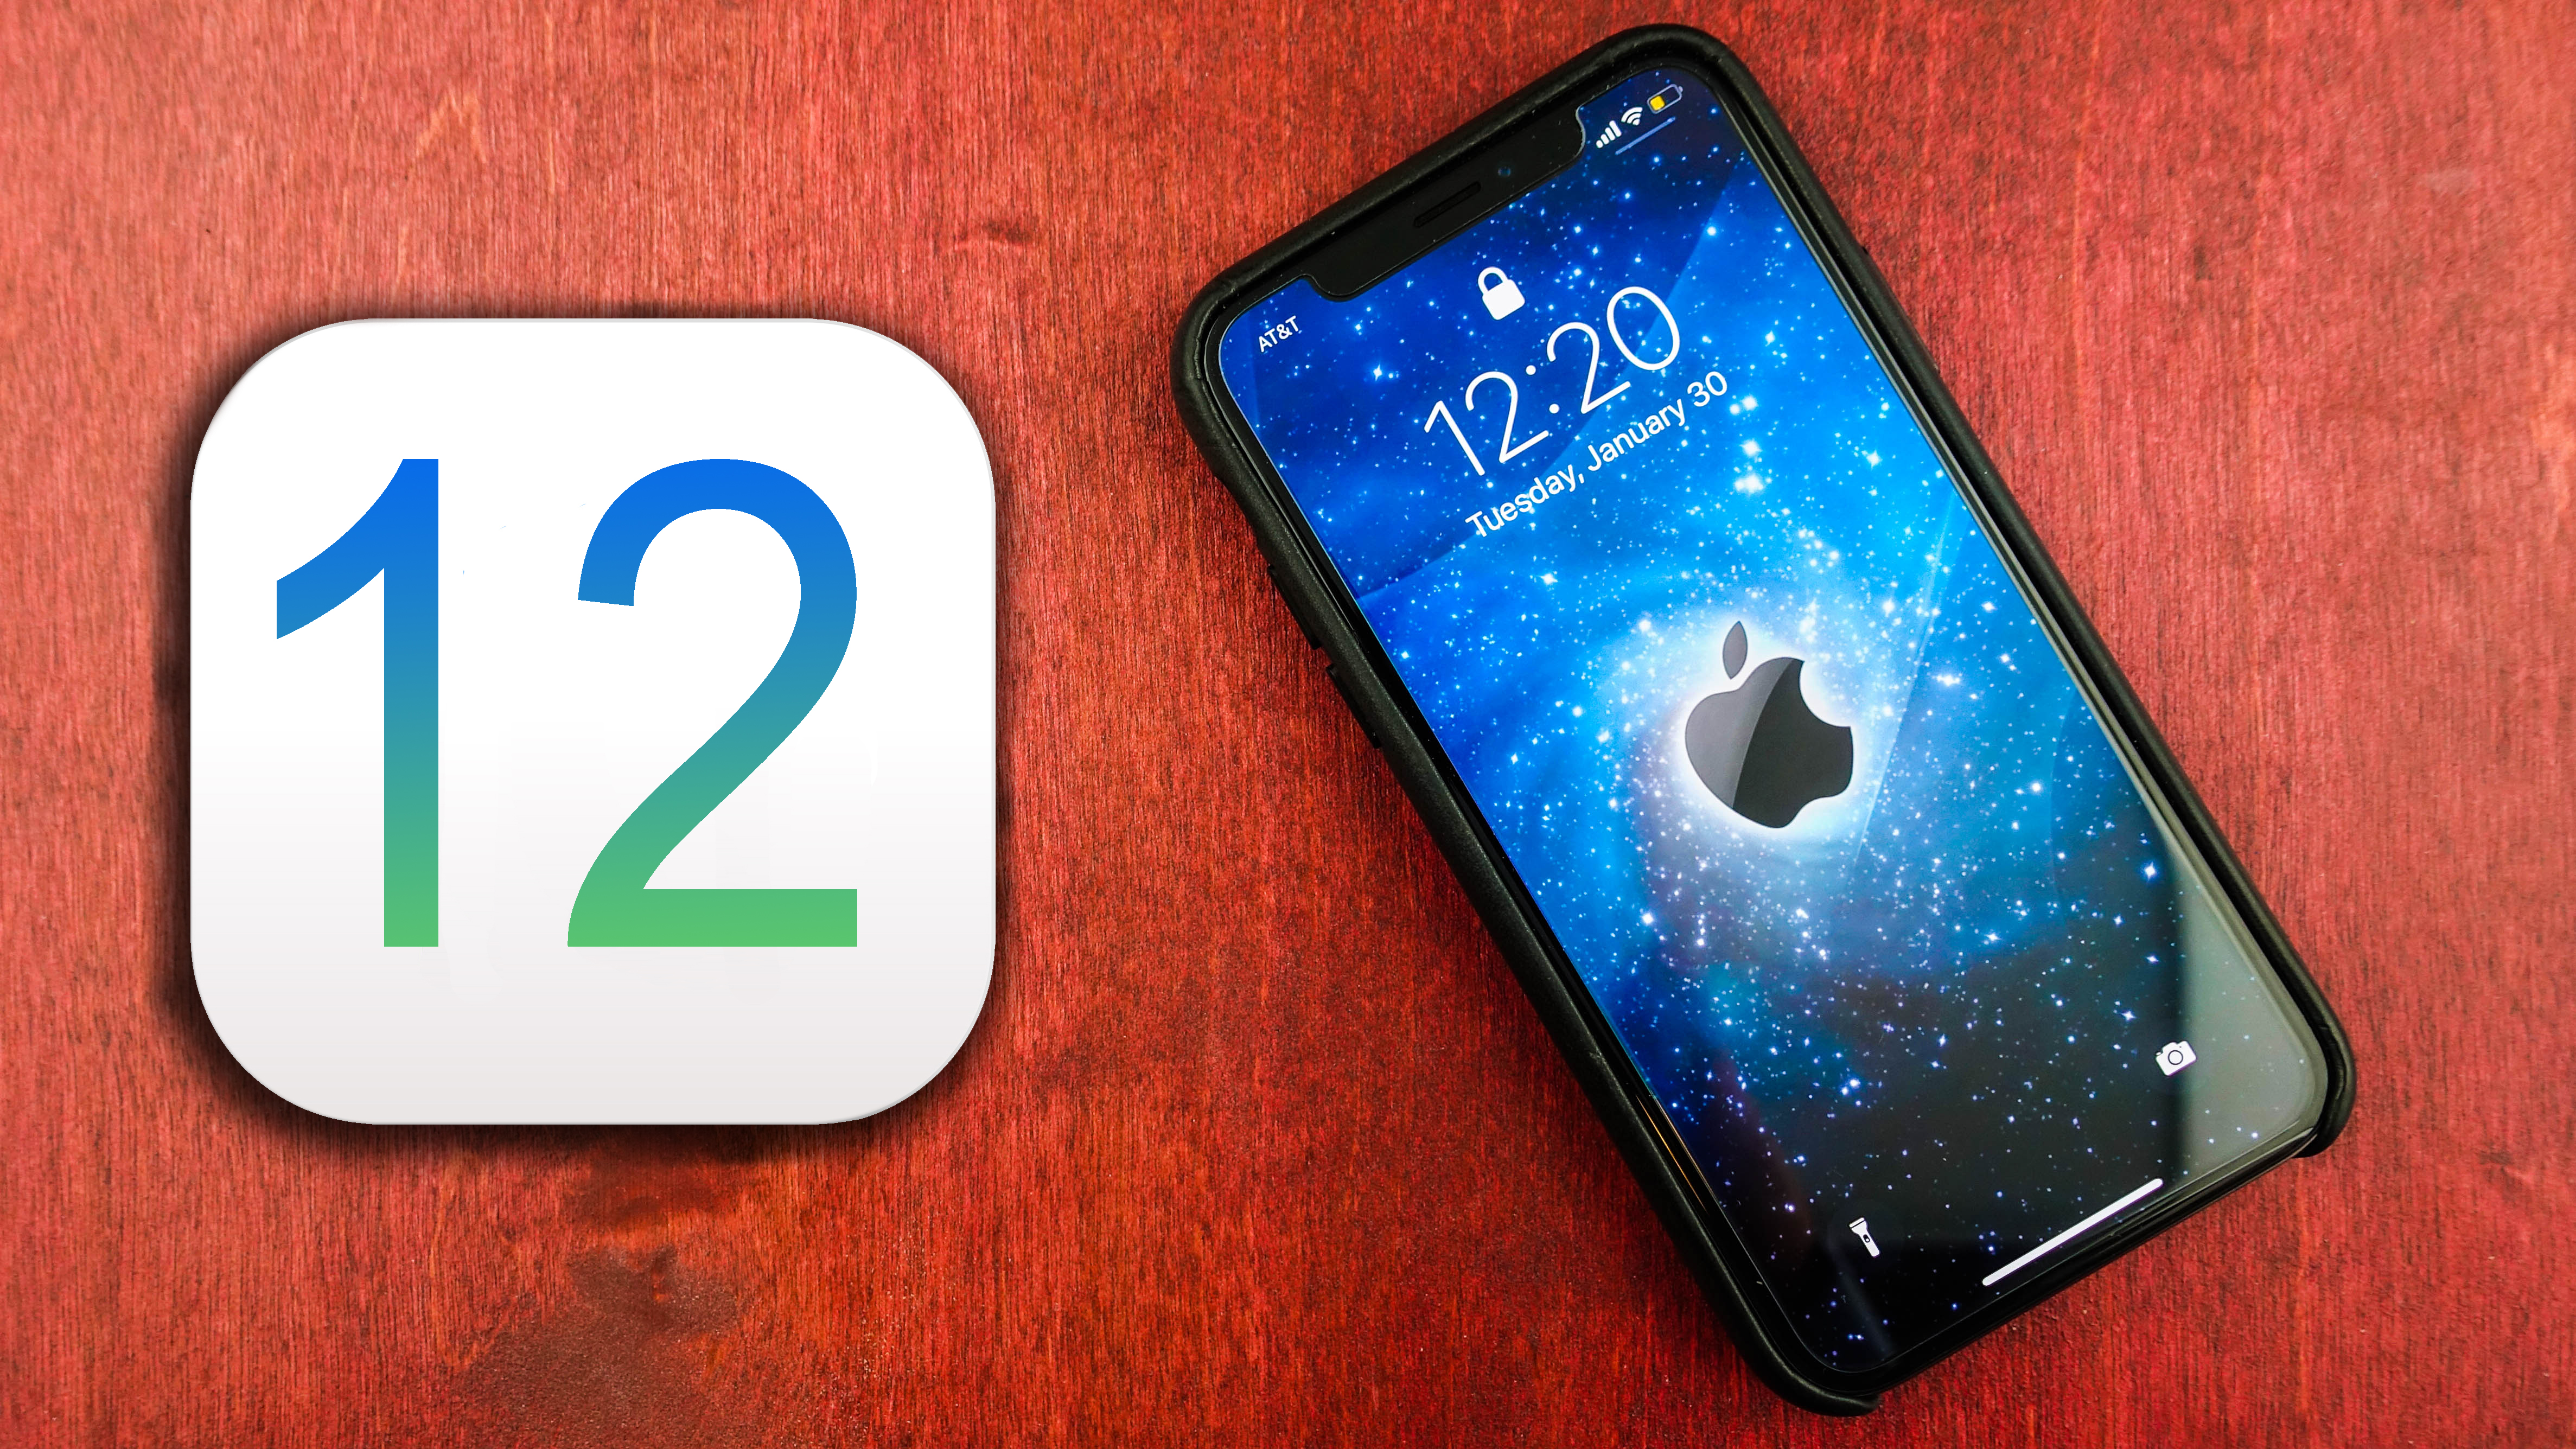 Cara Instal iOS 12 Beta di iPhone Gratis